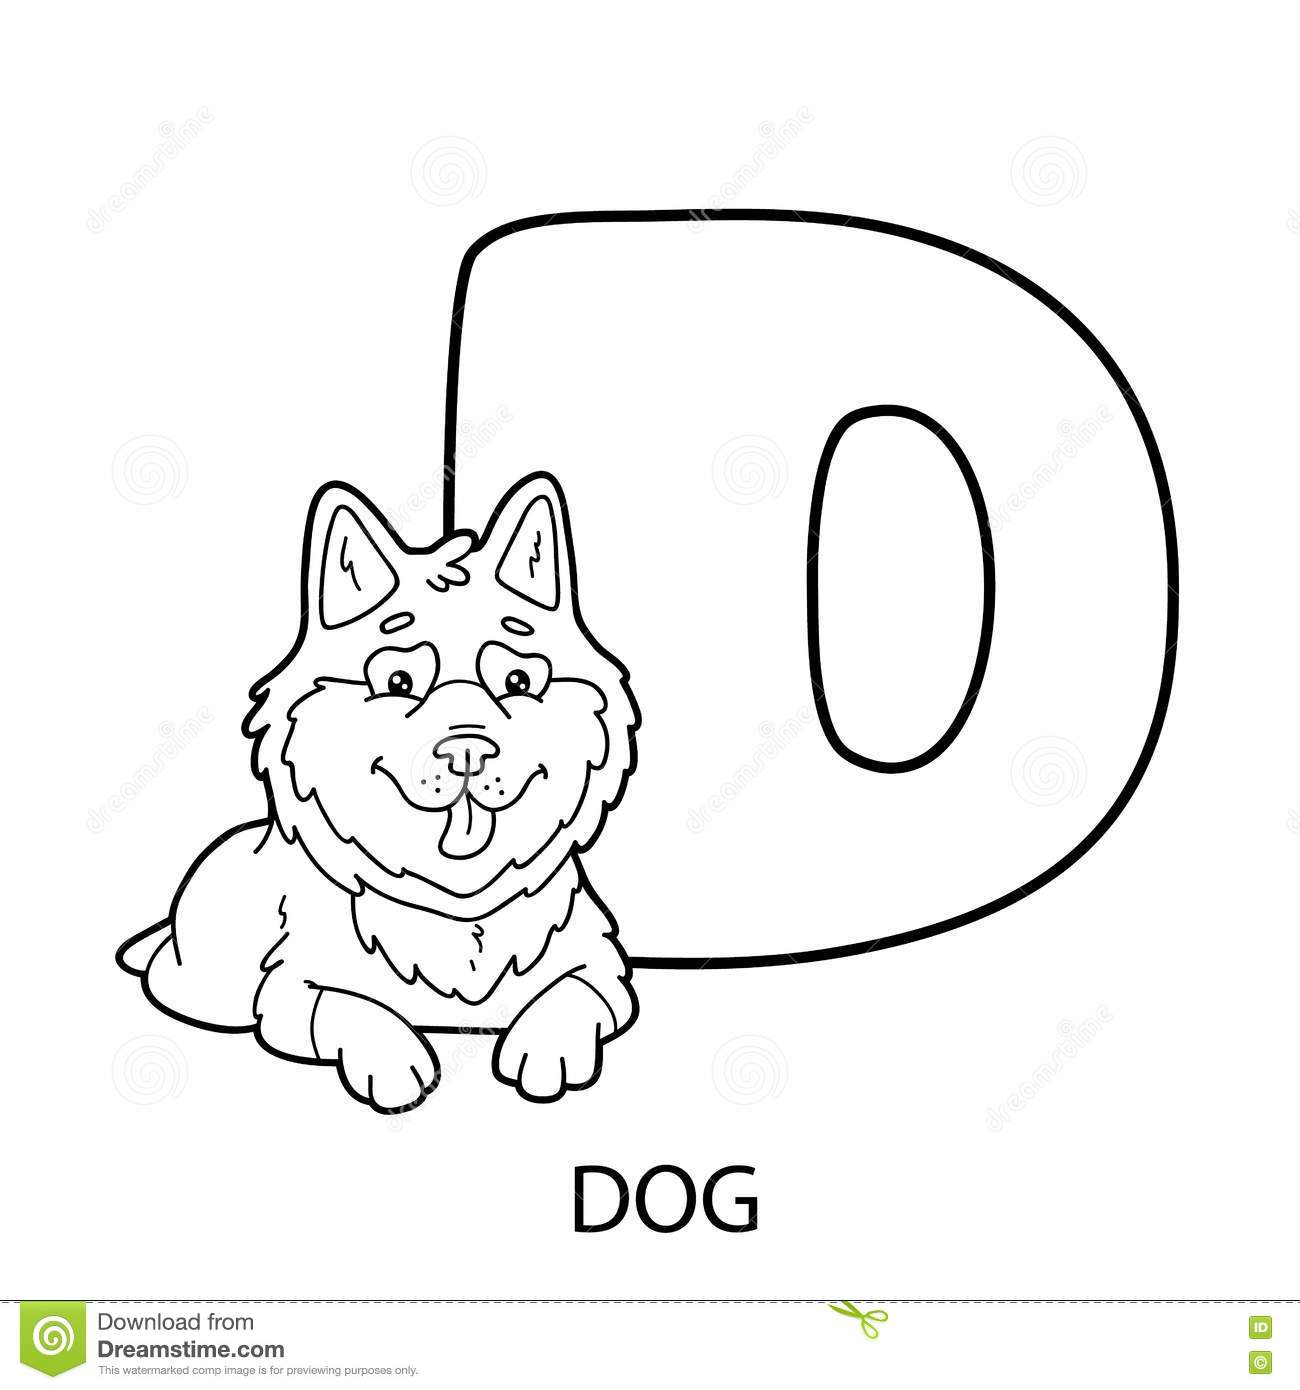 Husky coloring page stock vector. Illustration of childlike - 104995581